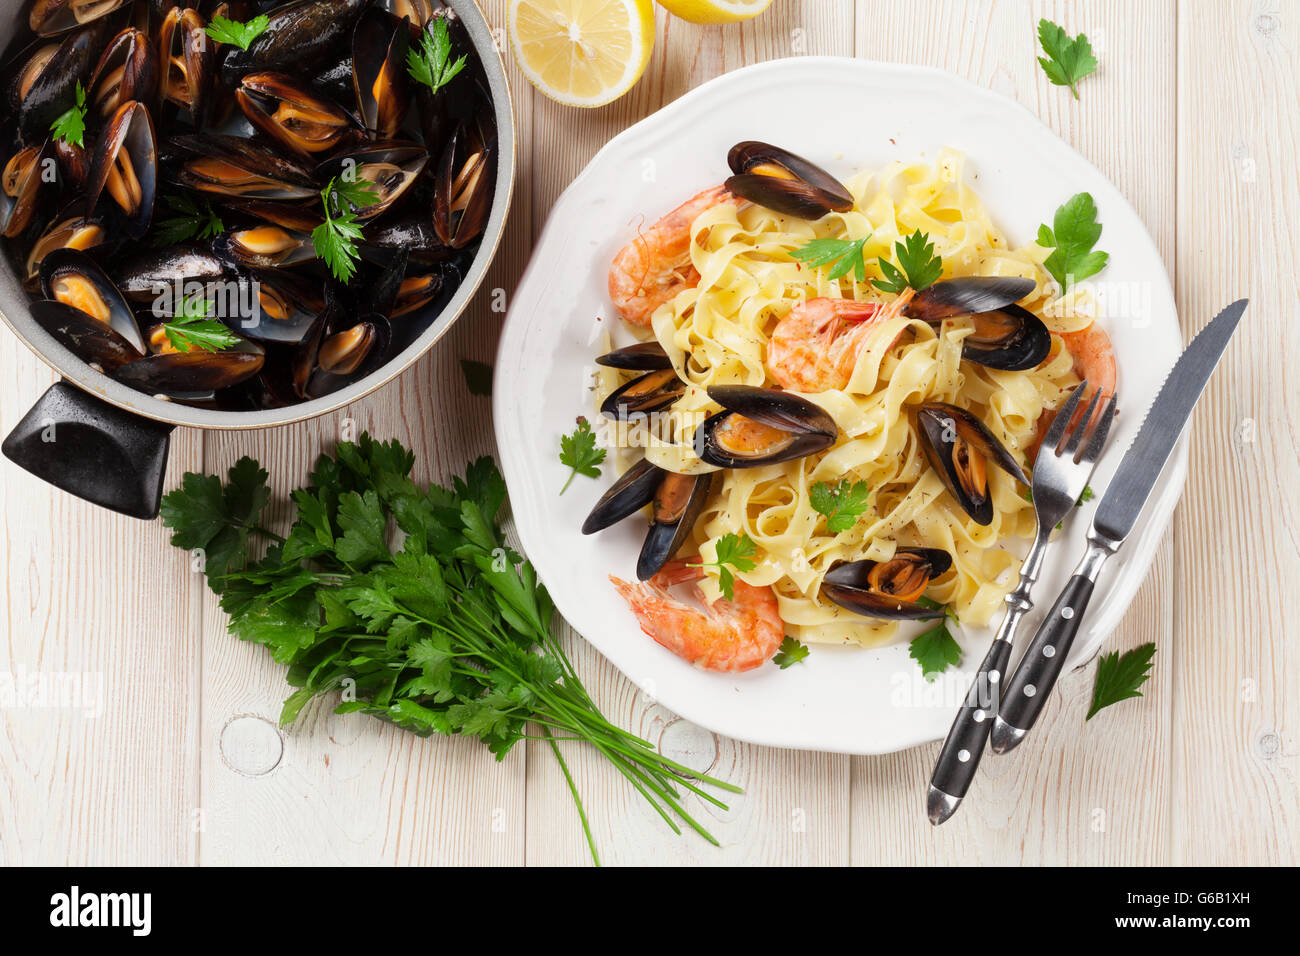 Pasta with seafood on wooden table. Mussels and prawns. Top view - Stock Image